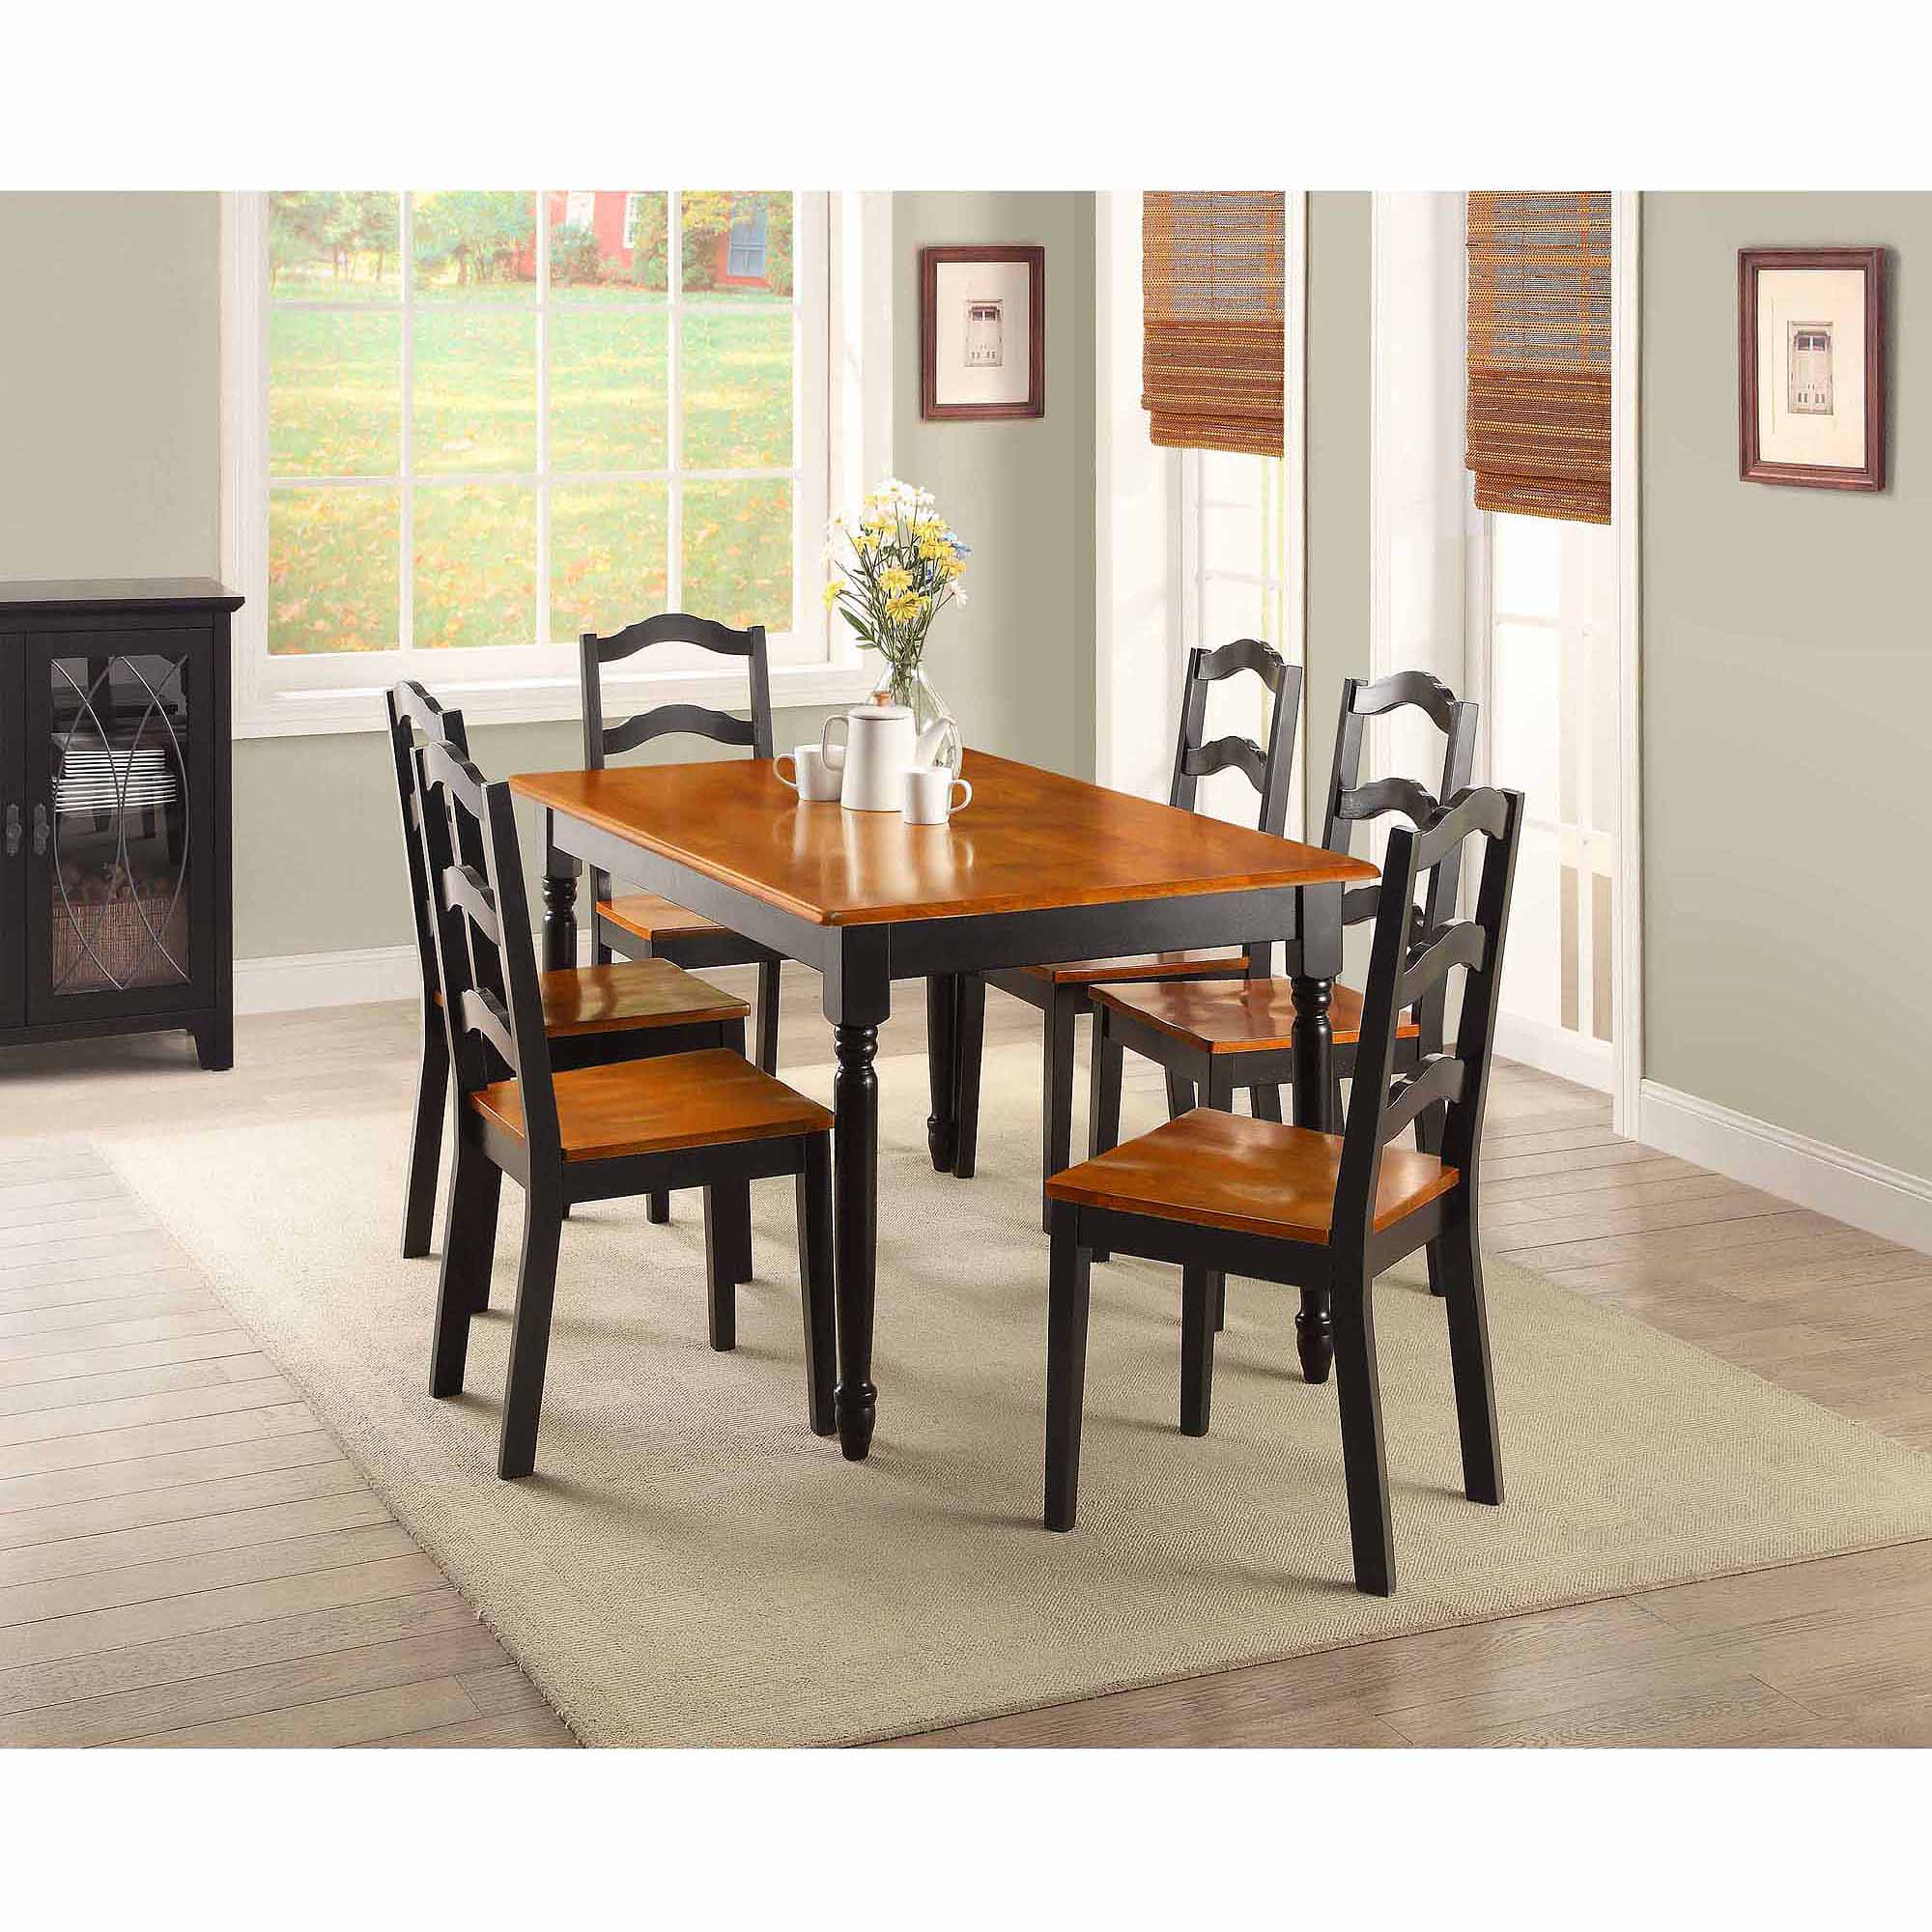 Better Homes And Garden Kitchens Better Homes And Gardens Autumn Lane 5 Piece Dining Set Black And